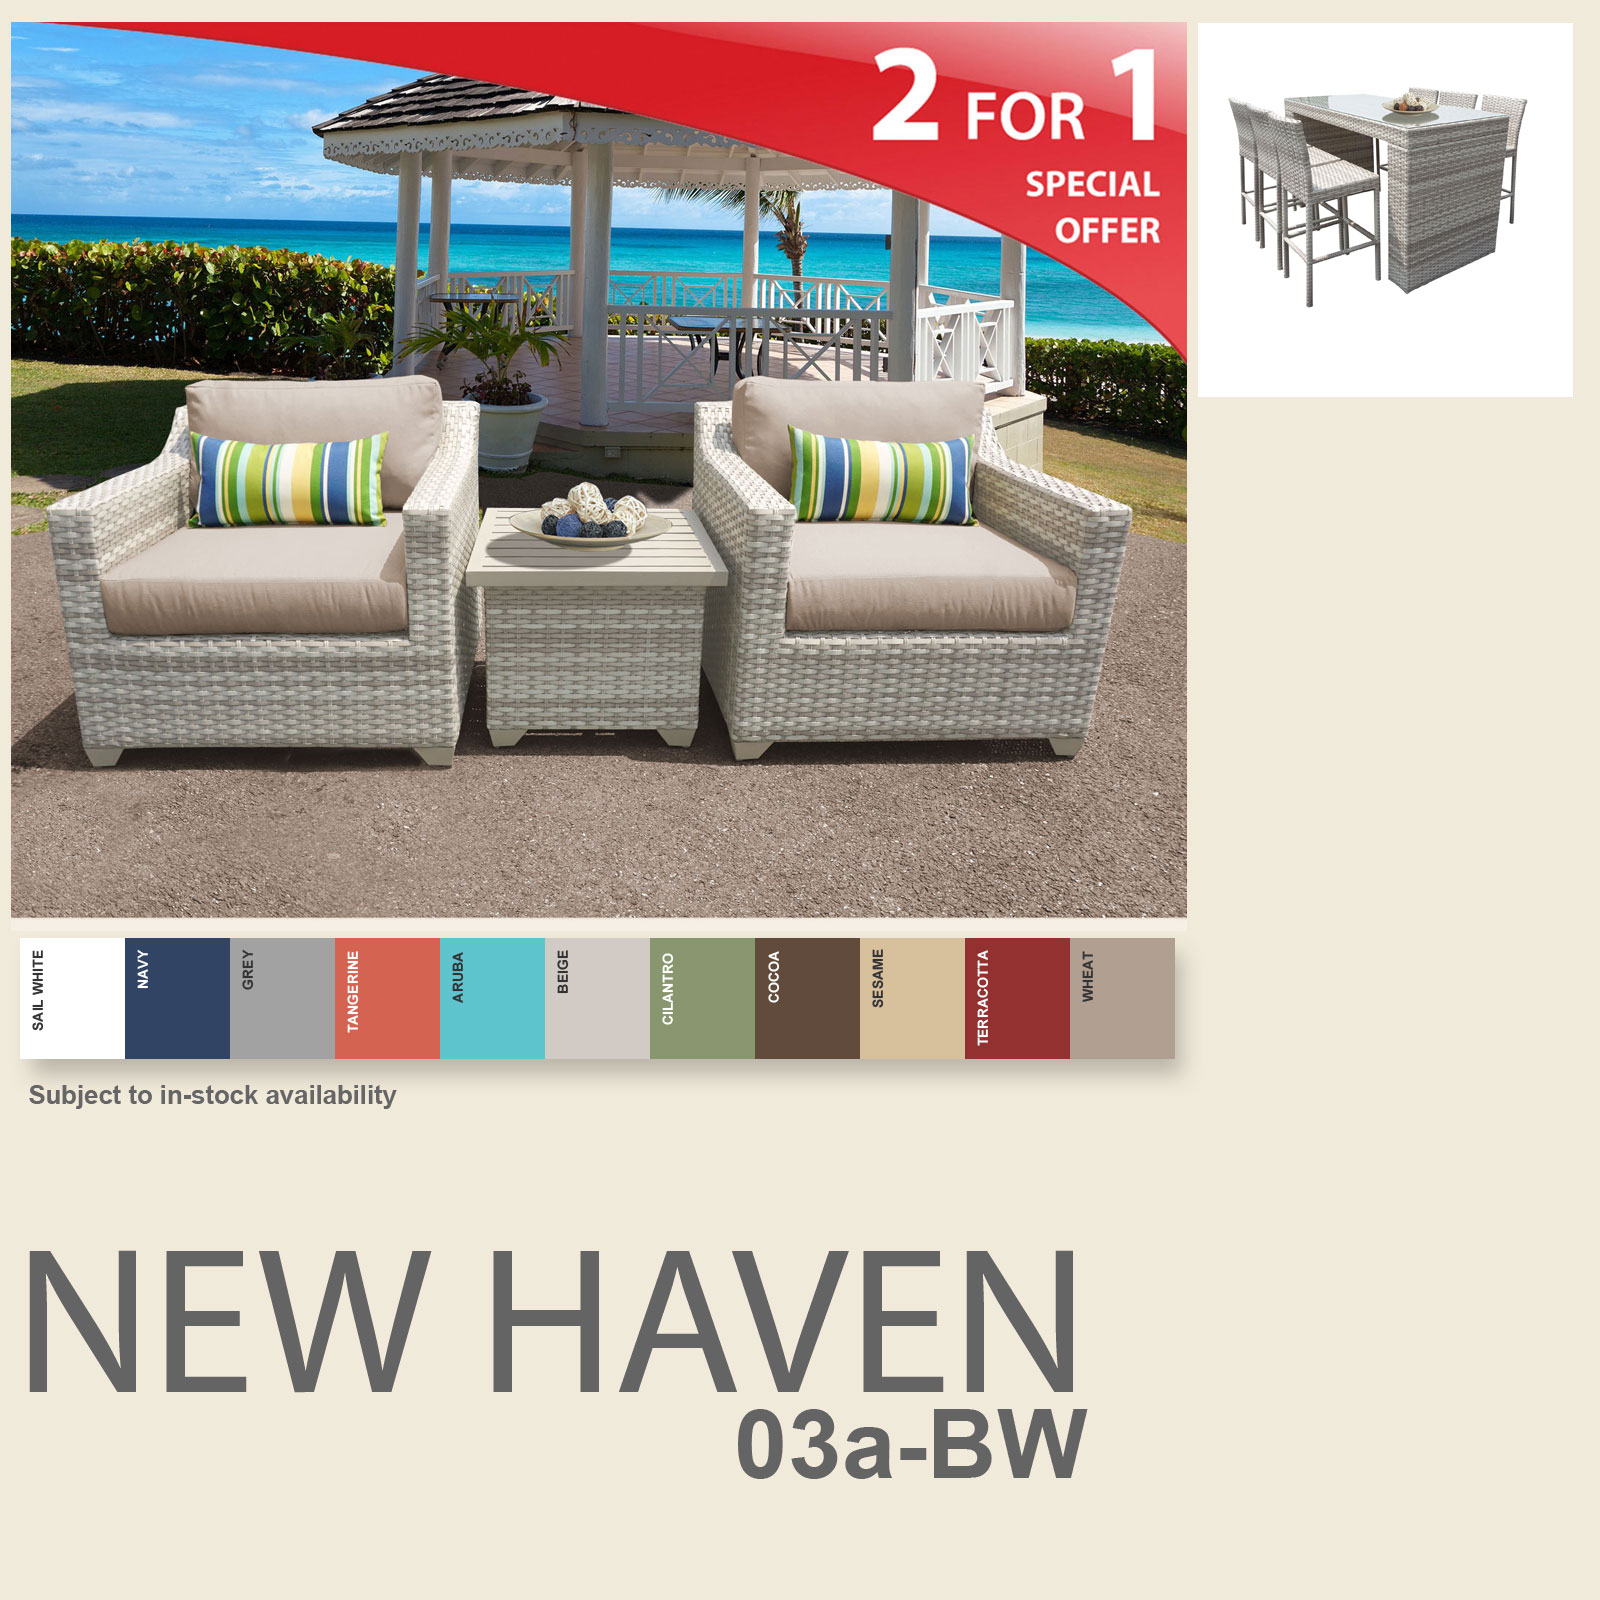 New Haven 10 Piece Outdoor Wicker Patio Furniture Package NEWHAVEN-03a-BW - Design Furnishings